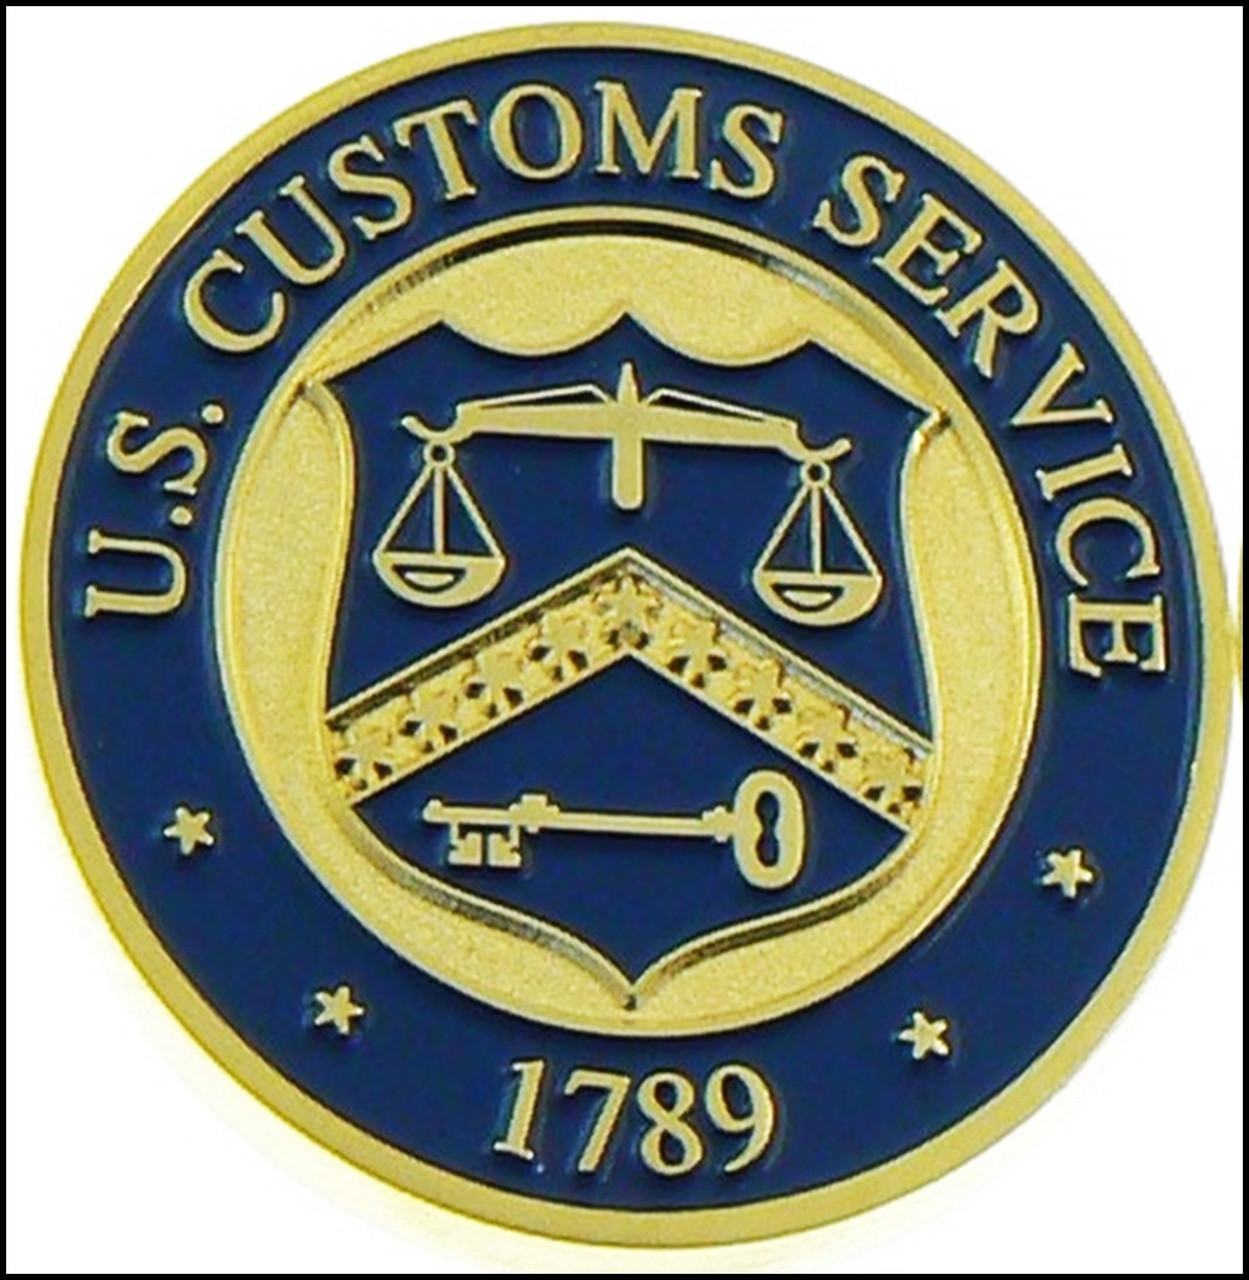 Legacy U.S. Customs Service Inspector Challenge Coin - Back